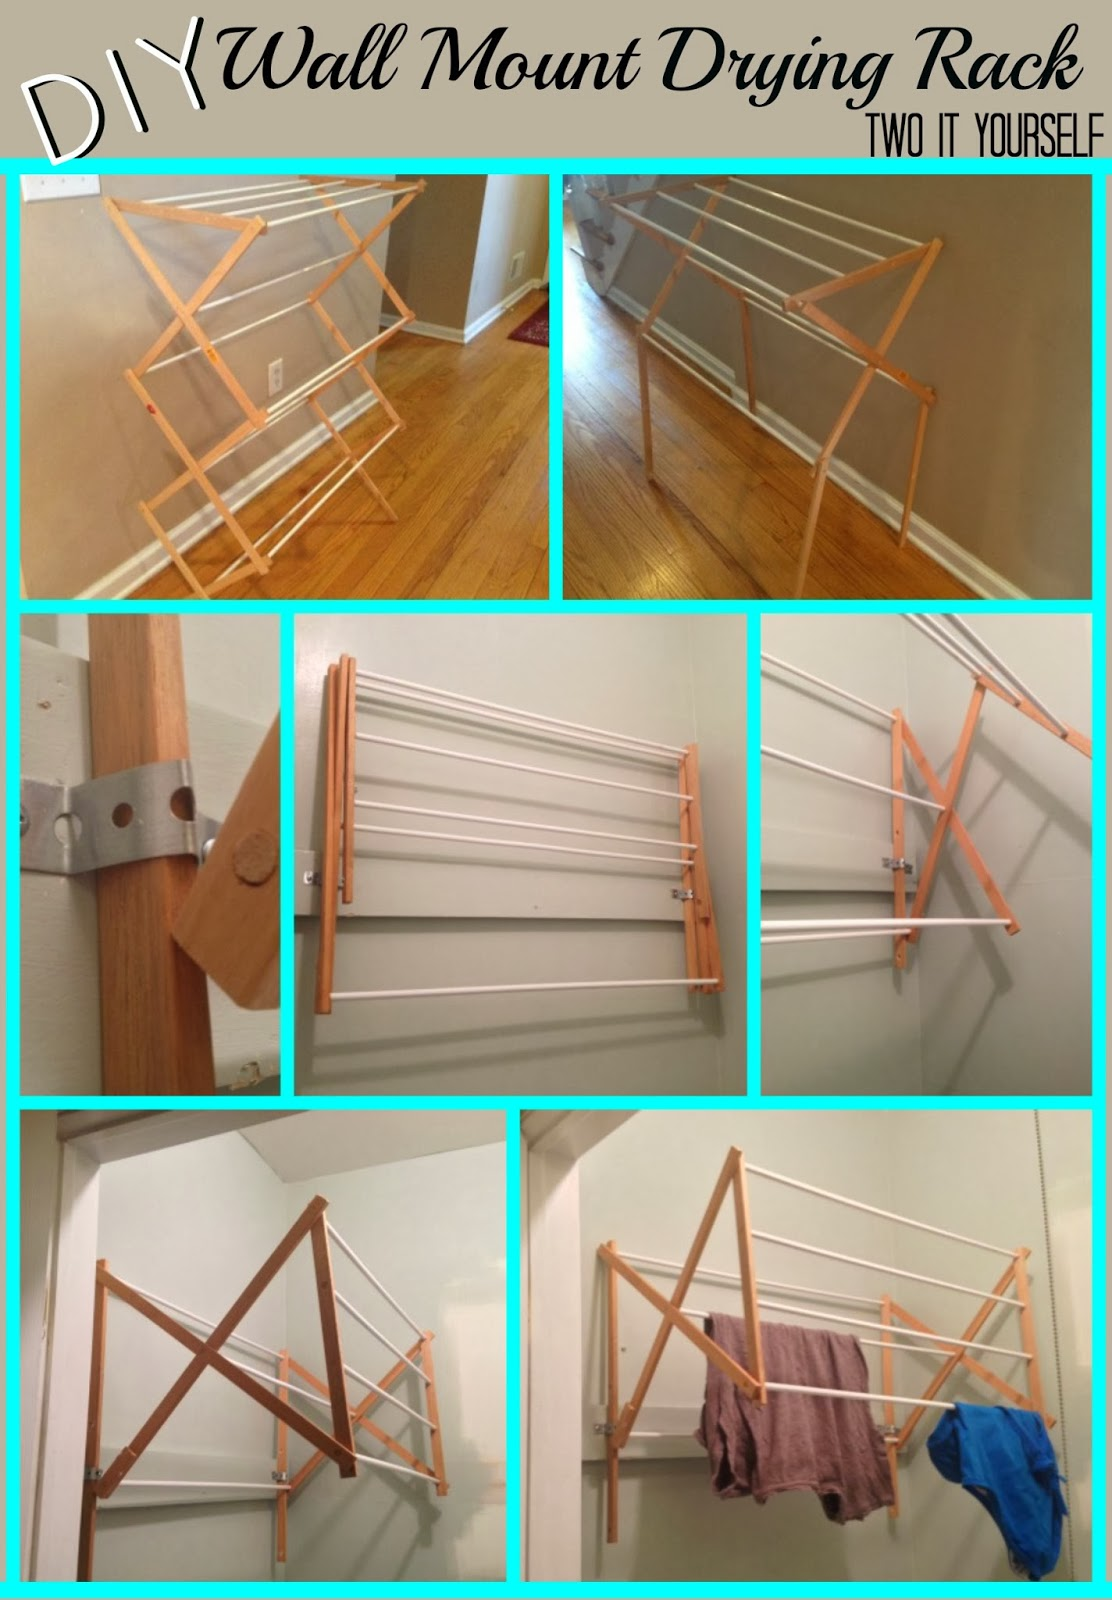 DIY Wall Mount Laundry Drying Rack from Two It Yourself